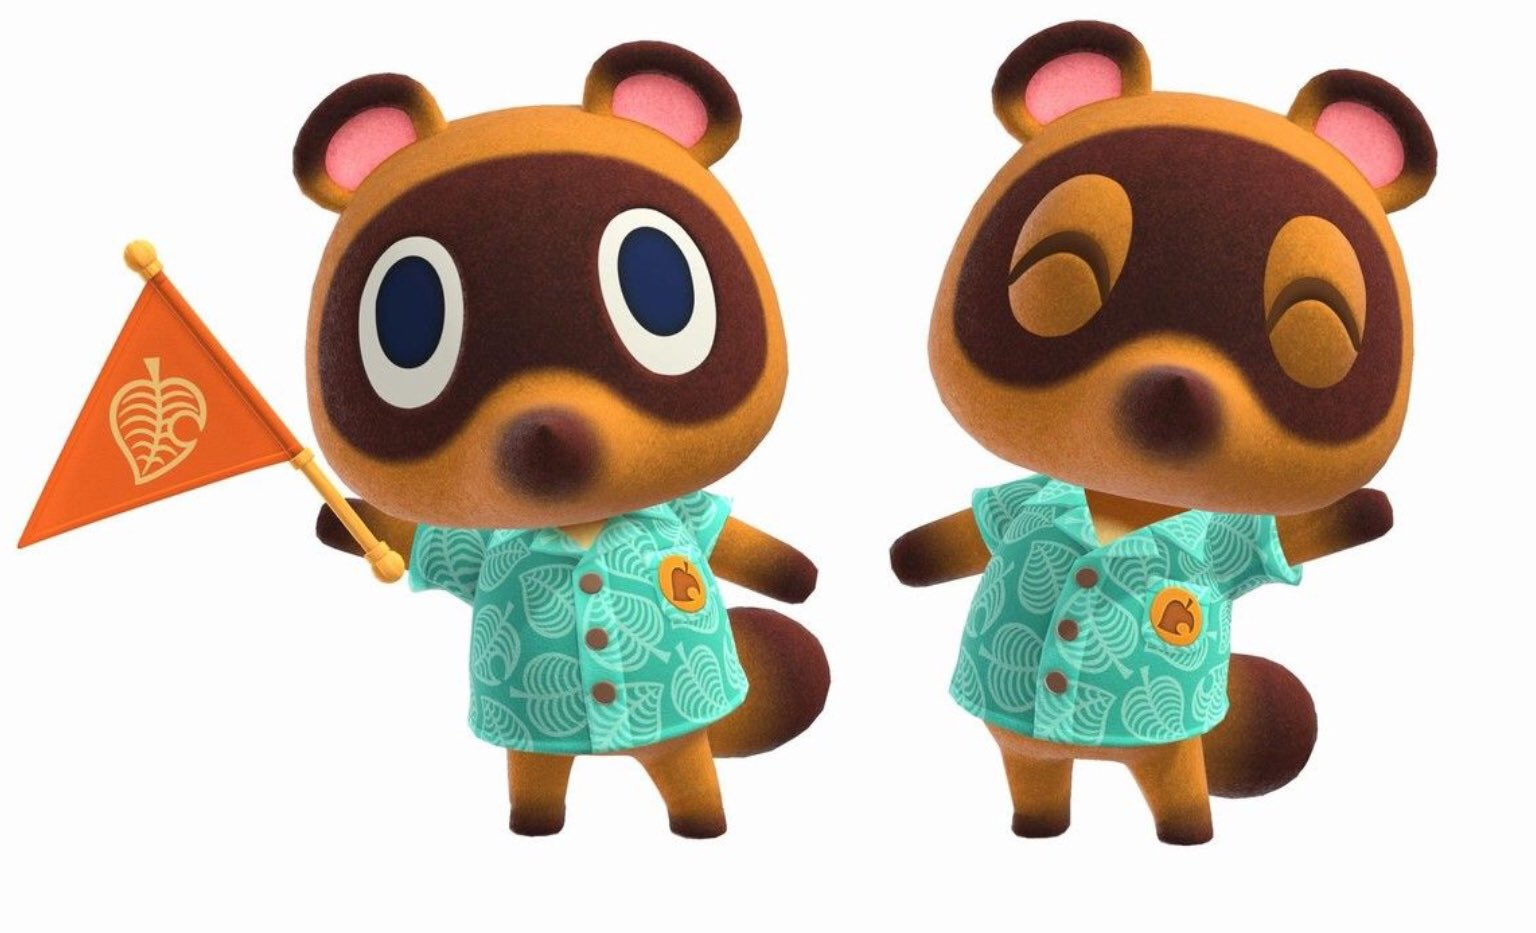 tim and tommy nook animal crossing new horizons